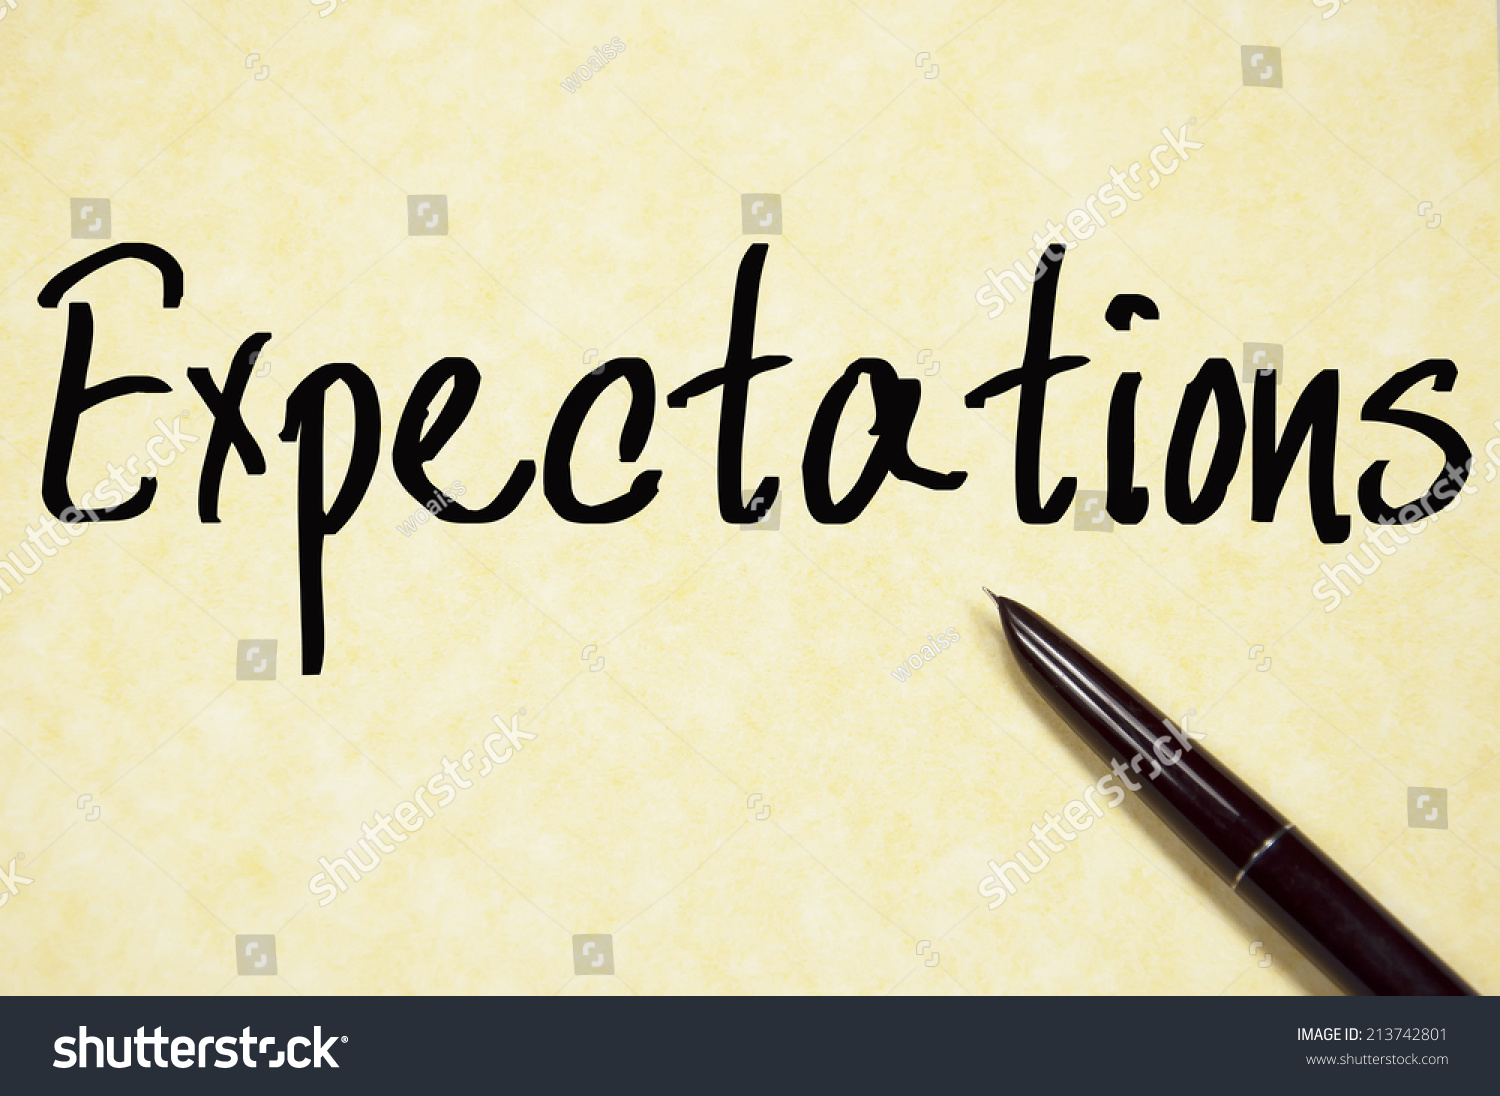 How to write expectations